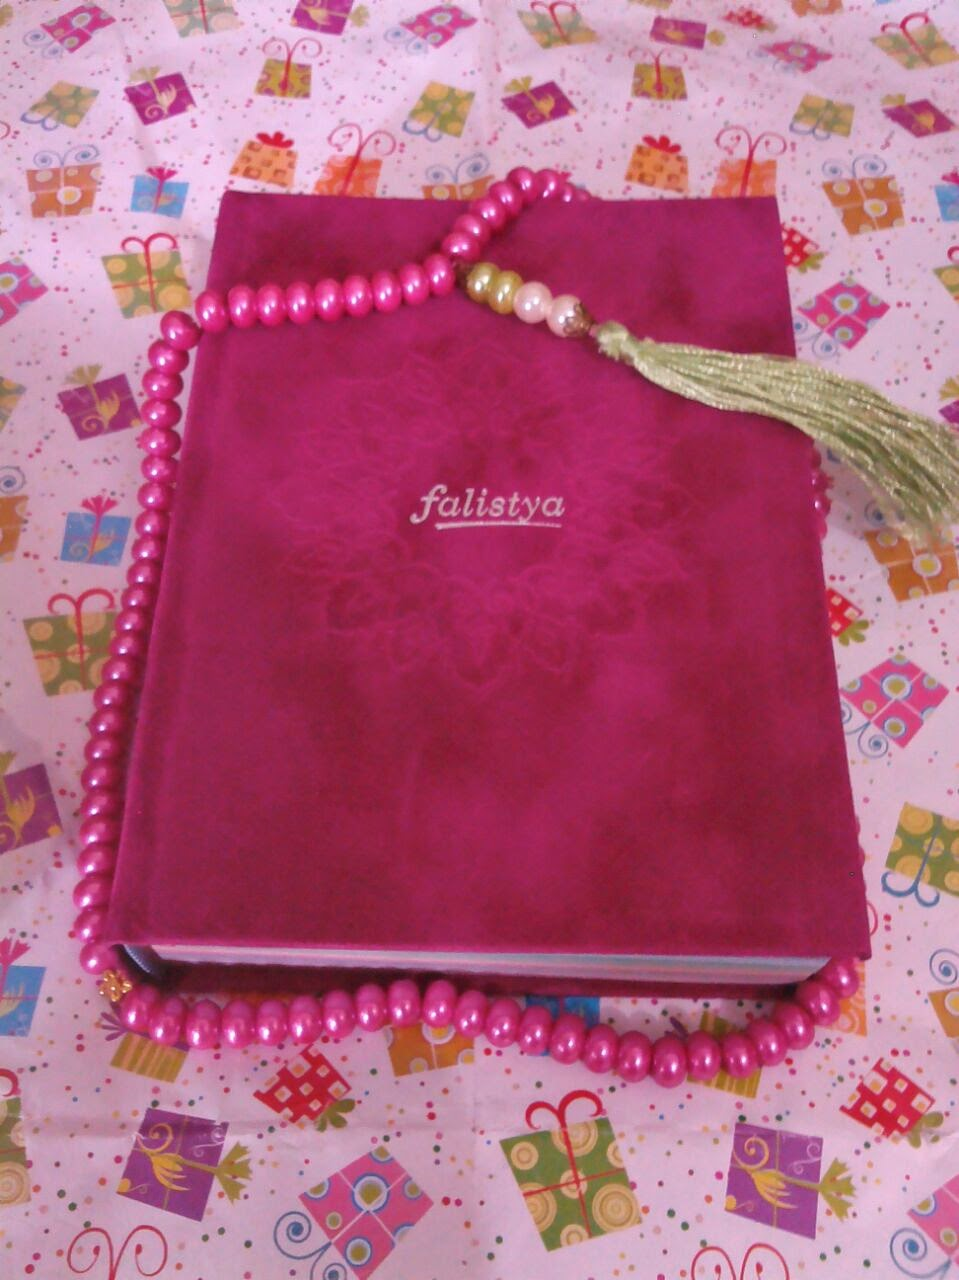 new rainbow quran, new rainbow quran colour, new quran rainbow, most favourit colour of rainbow quran, new rainbow quran fuschia, new rainbow quran magenta